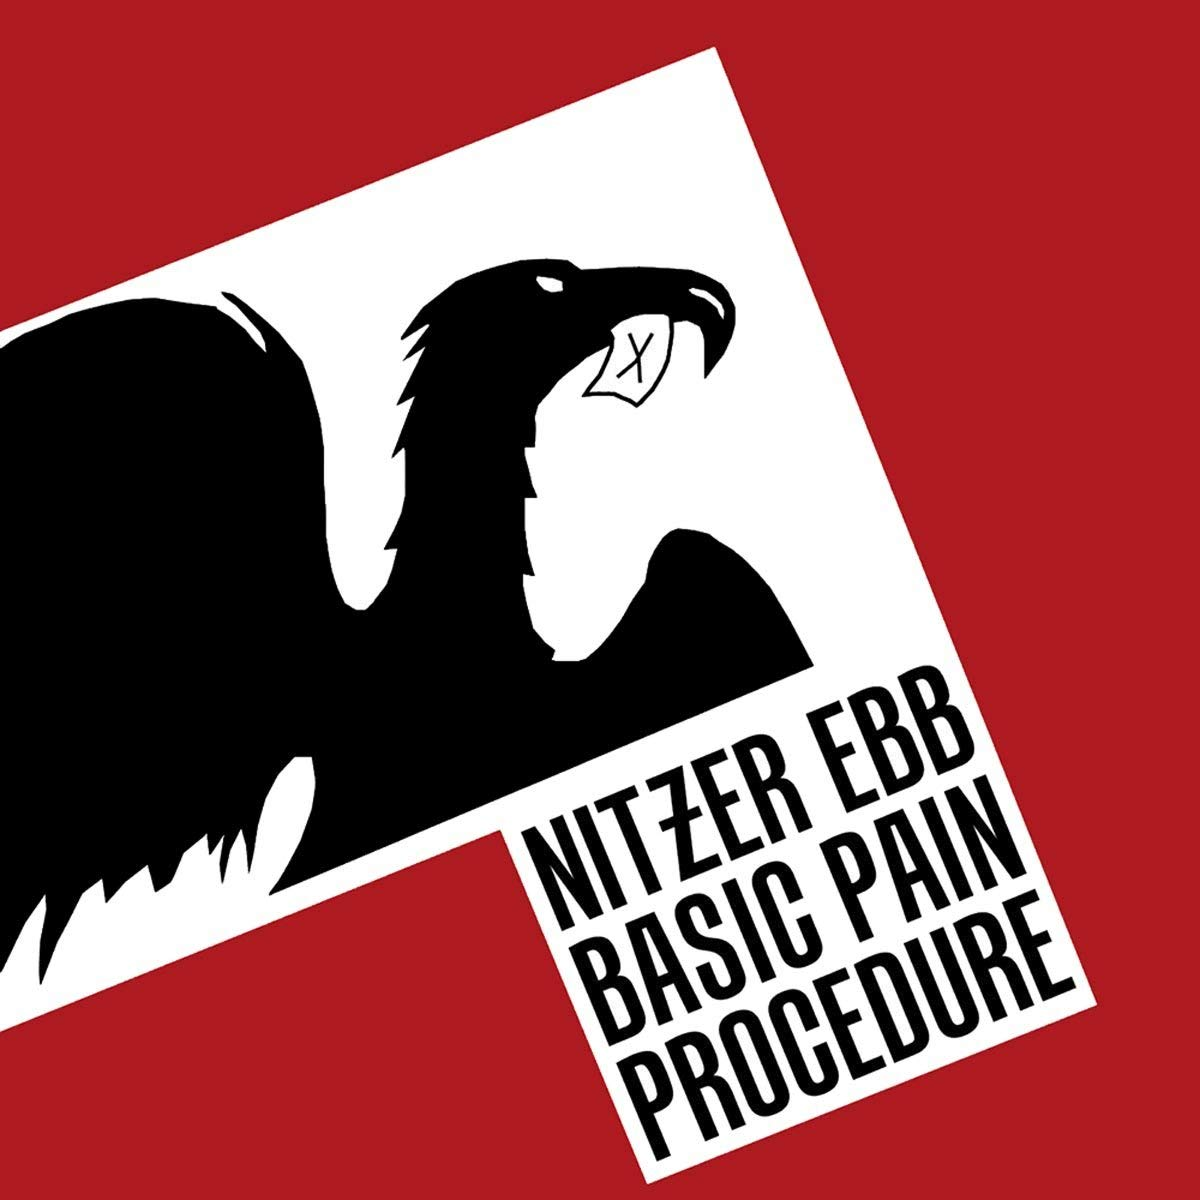 Basic Pain Procedure Nitzer Ebb discography